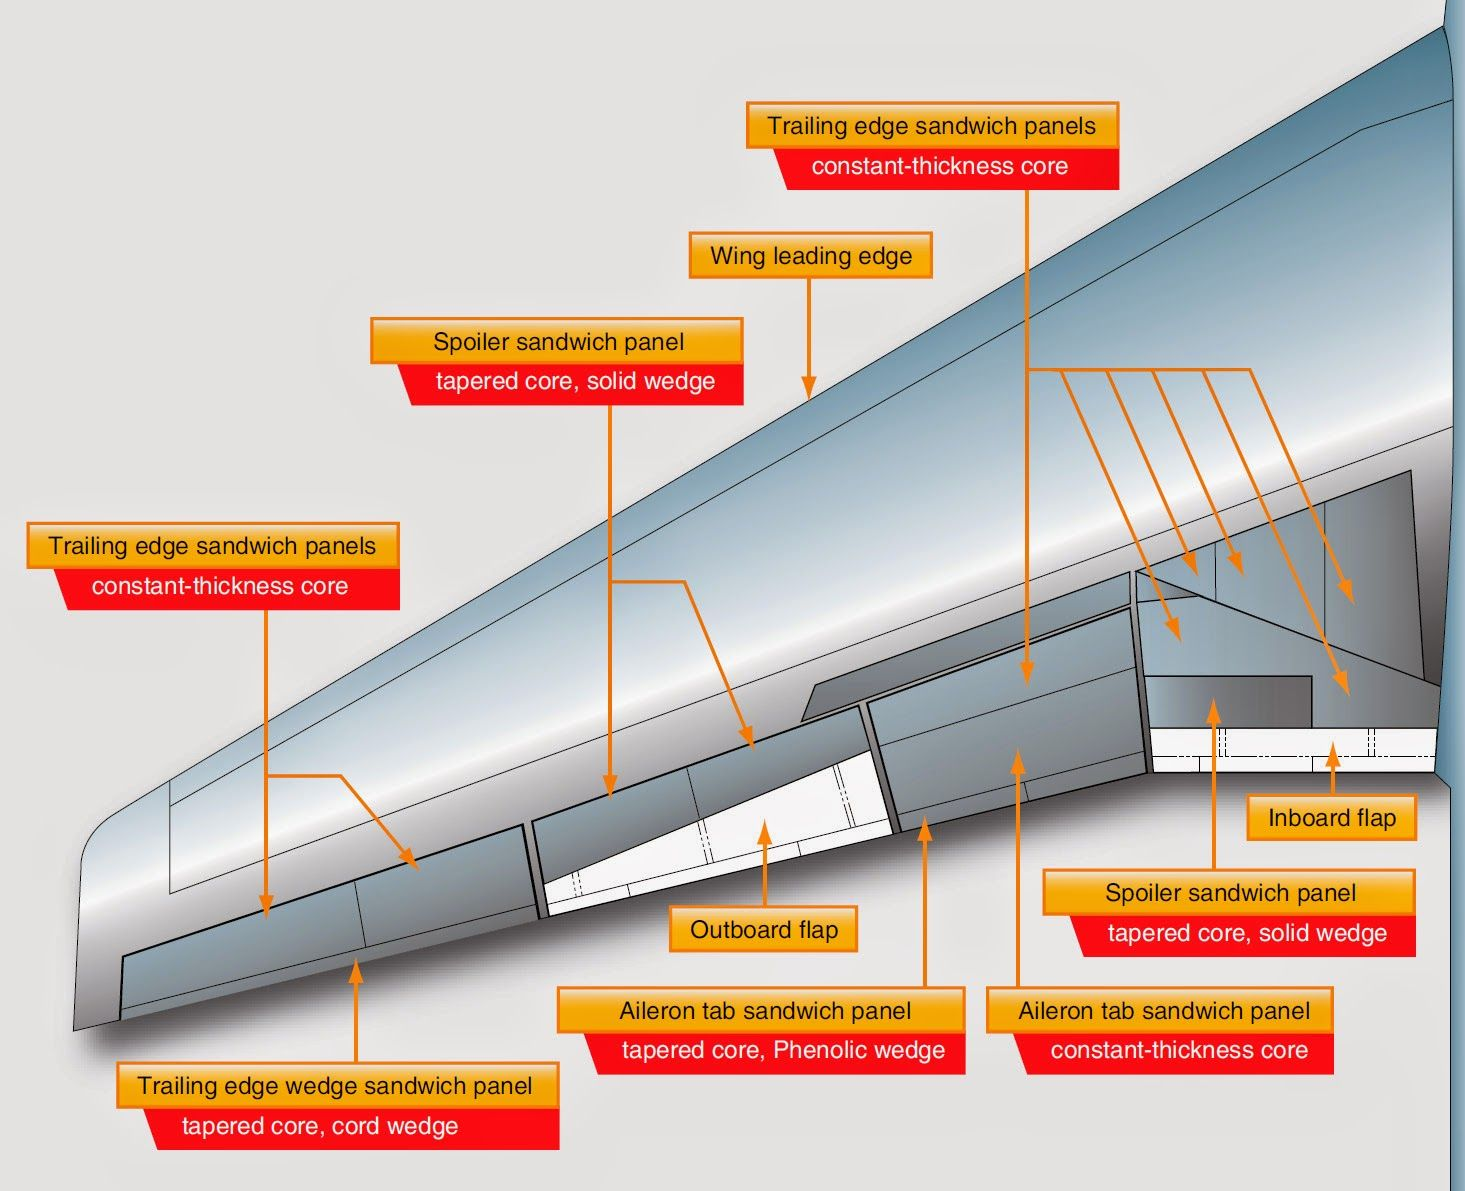 Honeycomb Wing Construction On A Large Jet Transport Aircraft